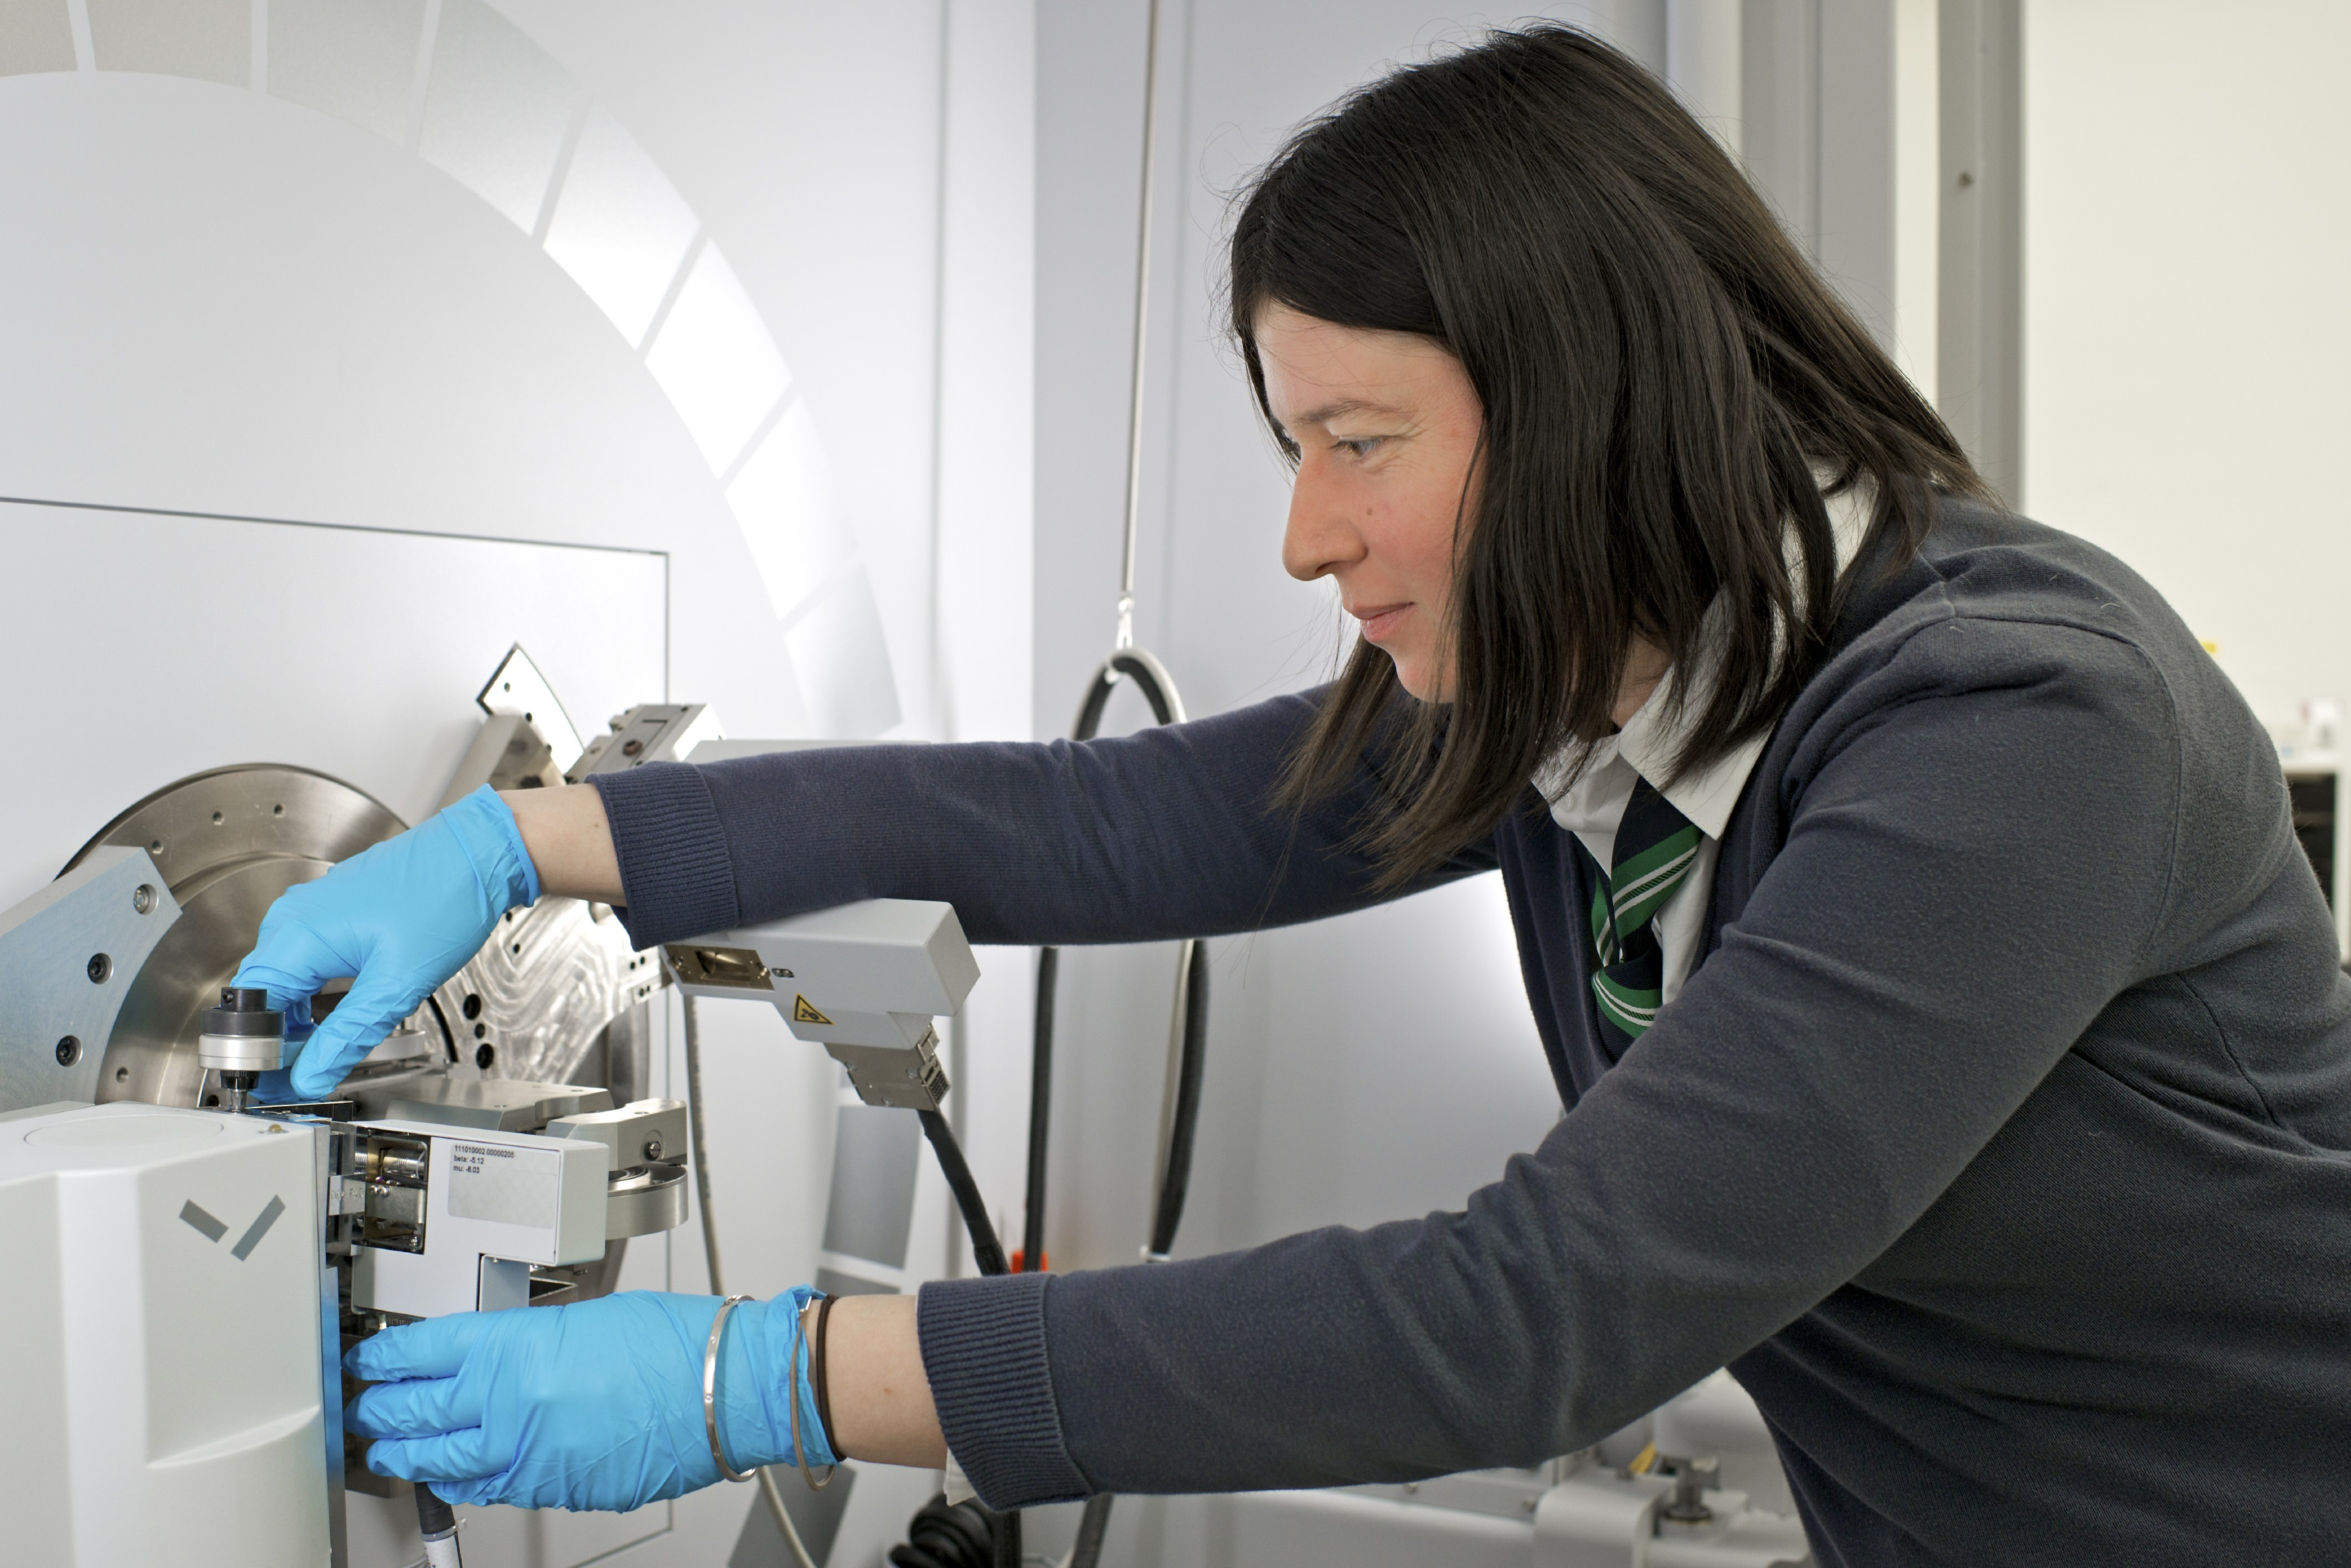 PSI researcher Claire Villevieille, head of the Battery Materials Group, at the instrument for X-ray diffraction. (Photo: Paul Scherrer Institute/Markus Fischer)